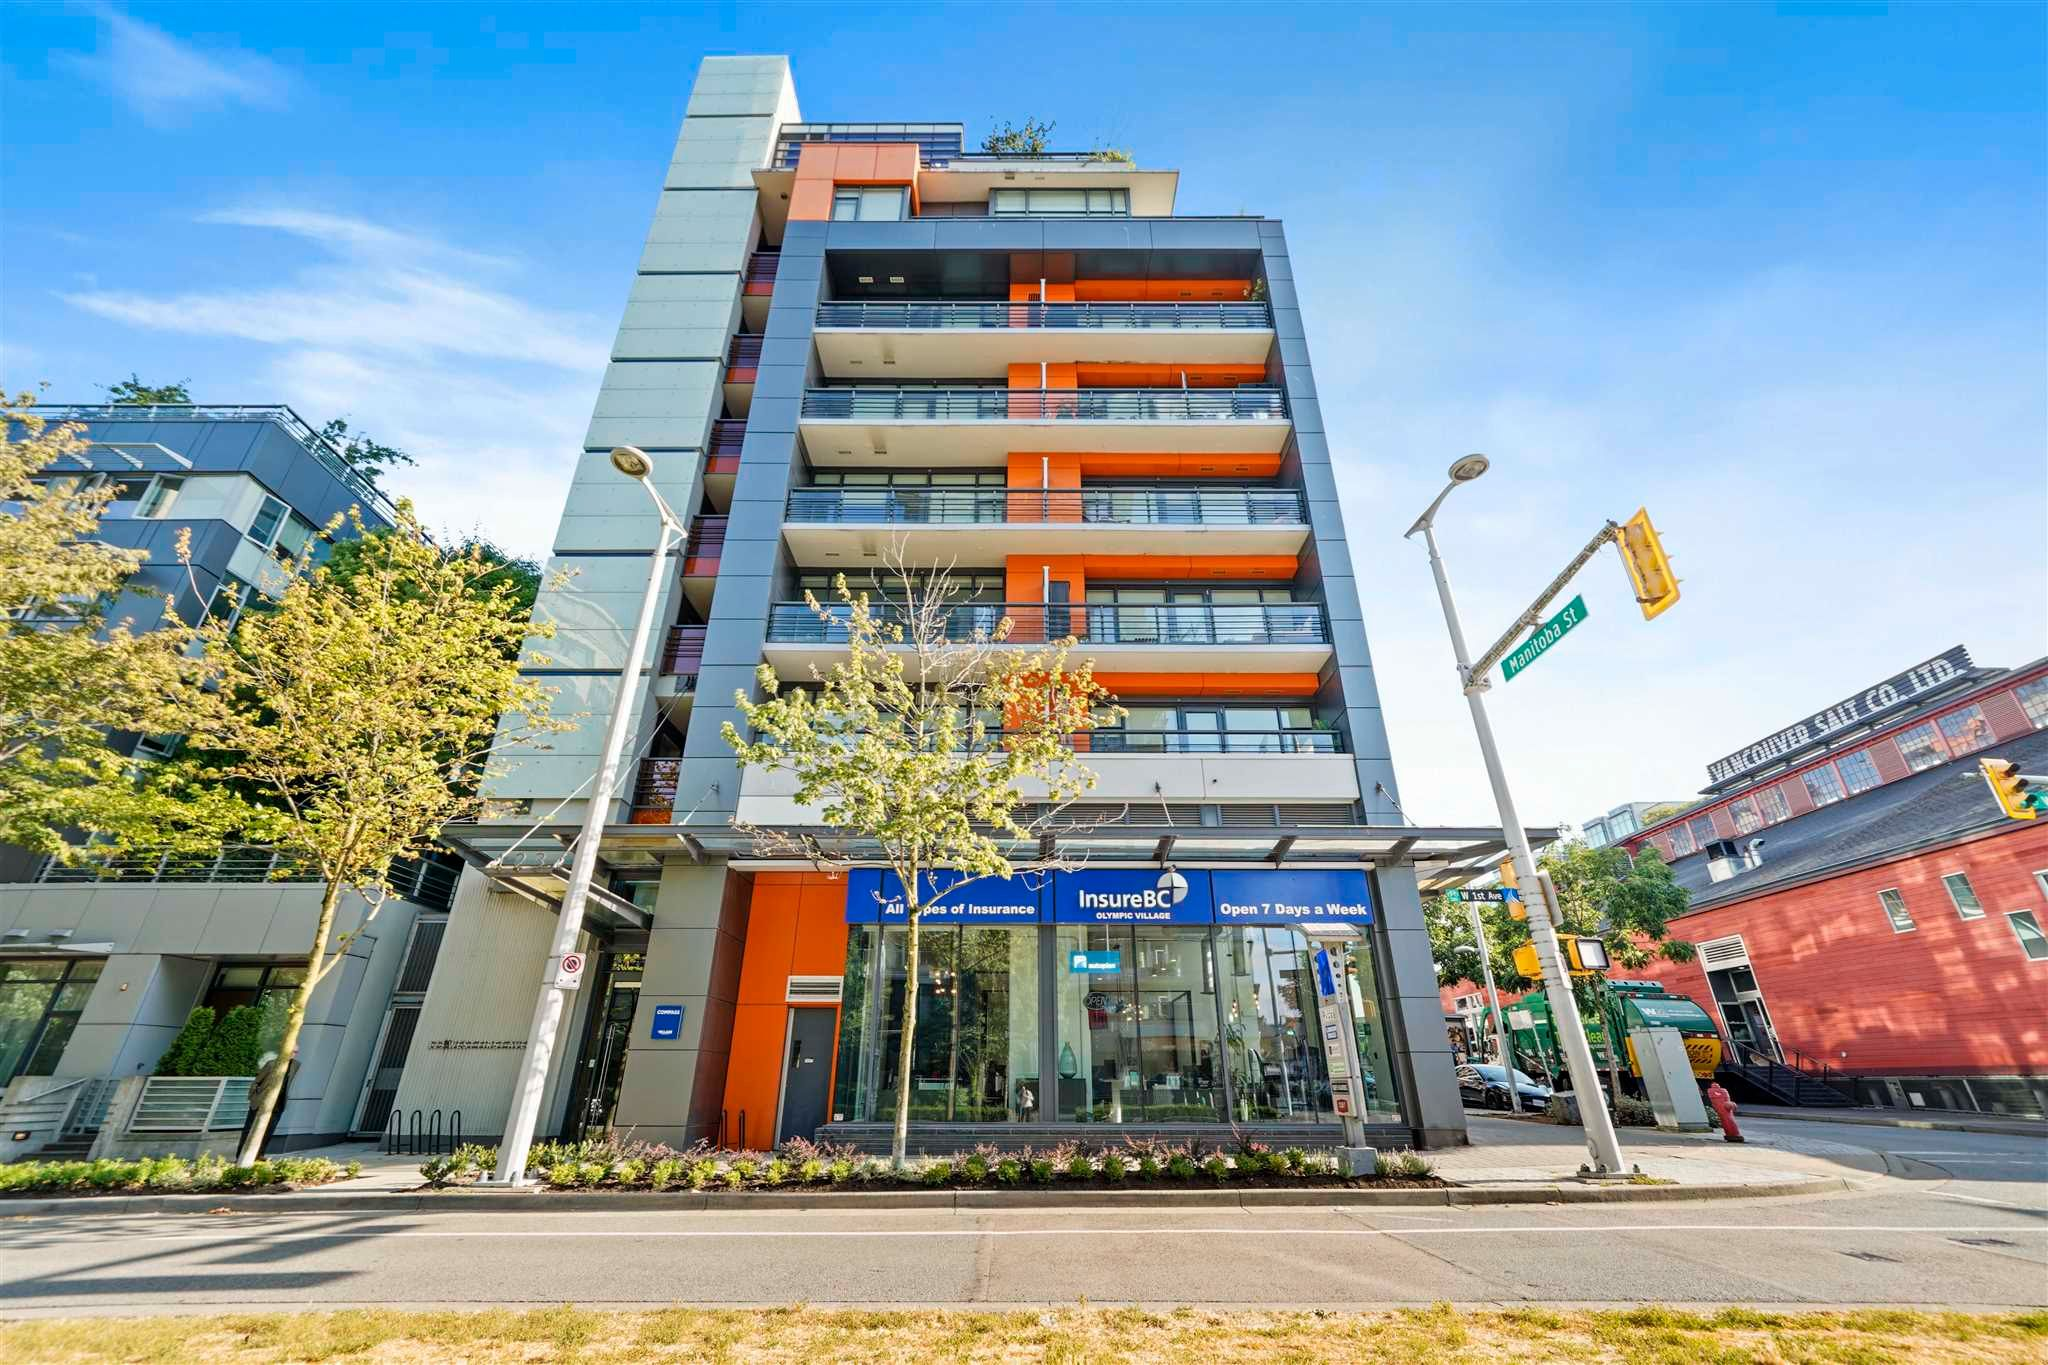 """Main Photo: 506 123 W 1ST Avenue in Vancouver: False Creek Condo for sale in """"COMPASS"""" (Vancouver West)  : MLS®# R2602843"""